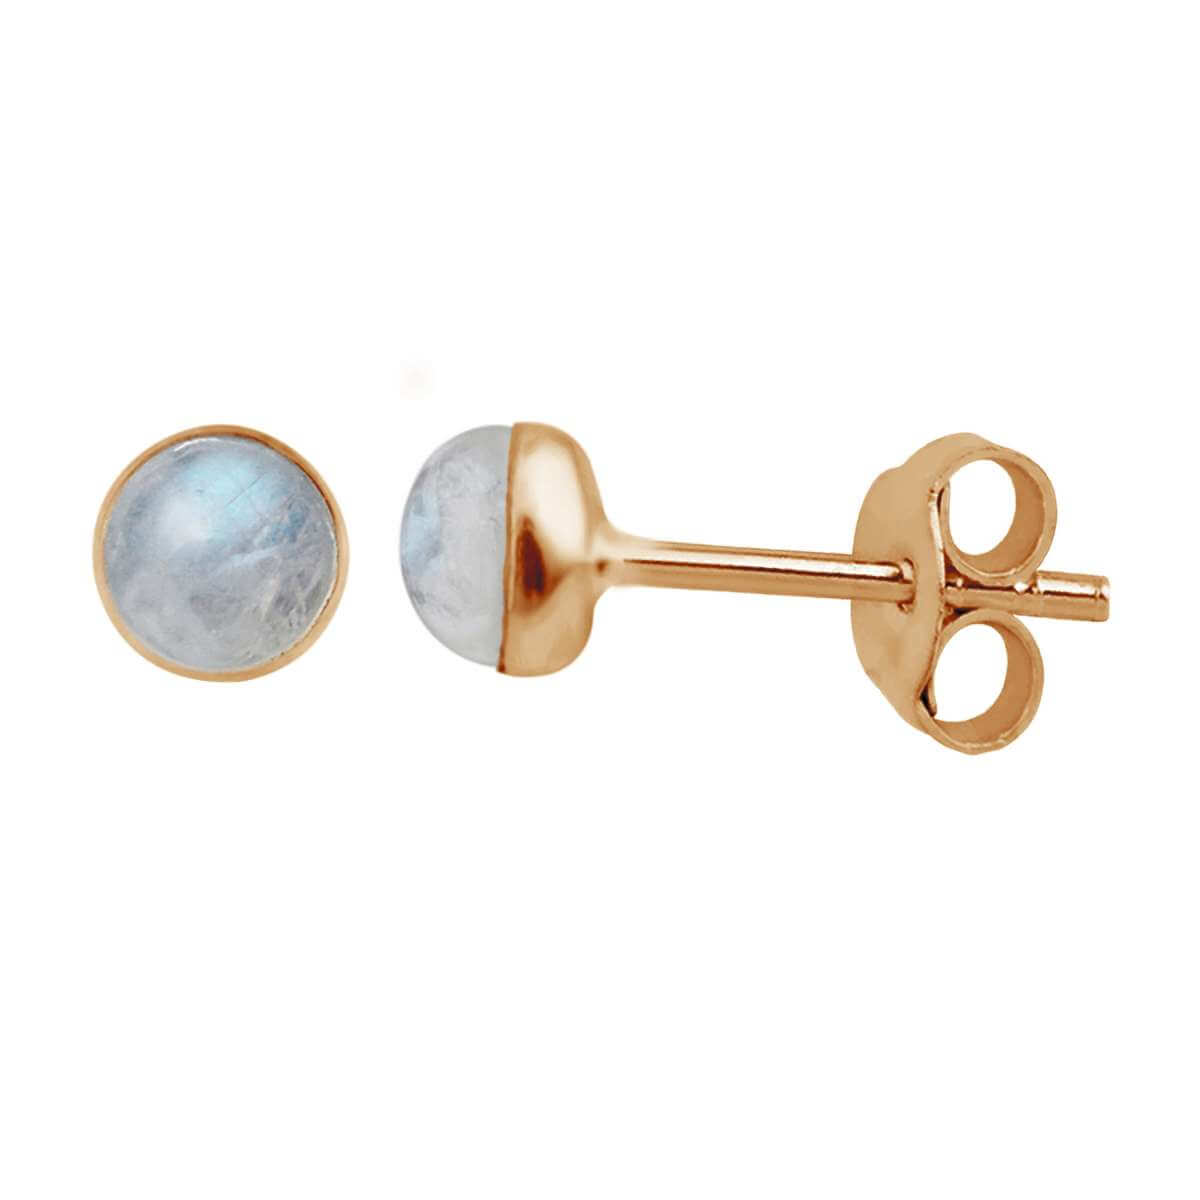 Rose Gold Plated Sterling Silver 3mm Moonstone Ball Stud Earrings